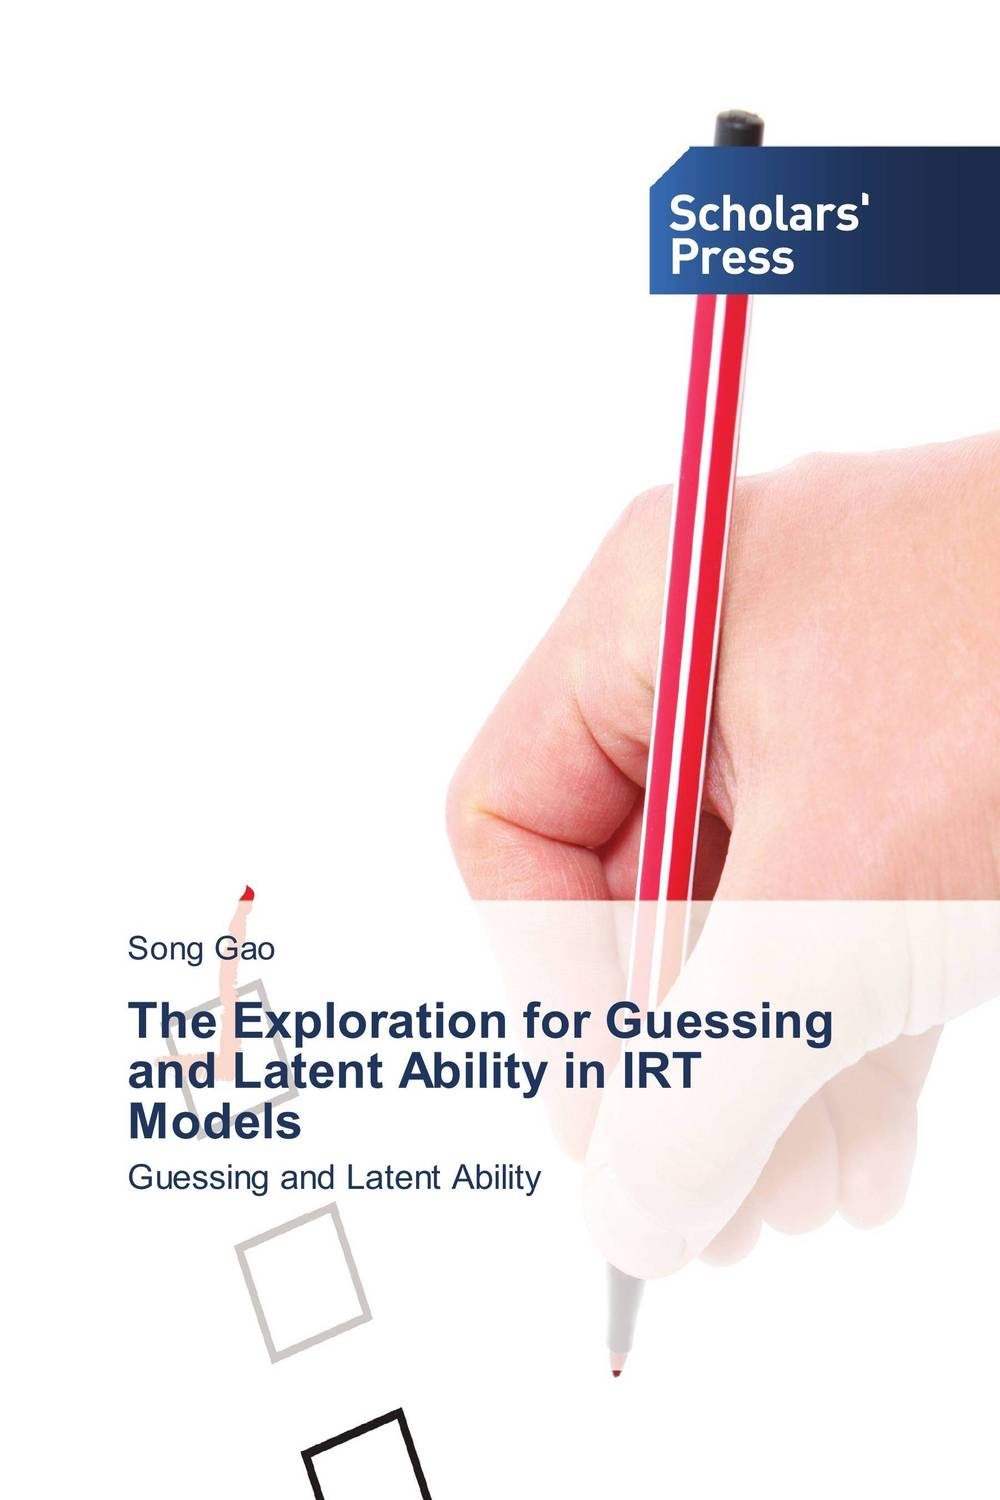 The Exploration for Guessing and Latent Ability in IRT Models keith holdaway harness oil and gas big data with analytics optimize exploration and production with data driven models